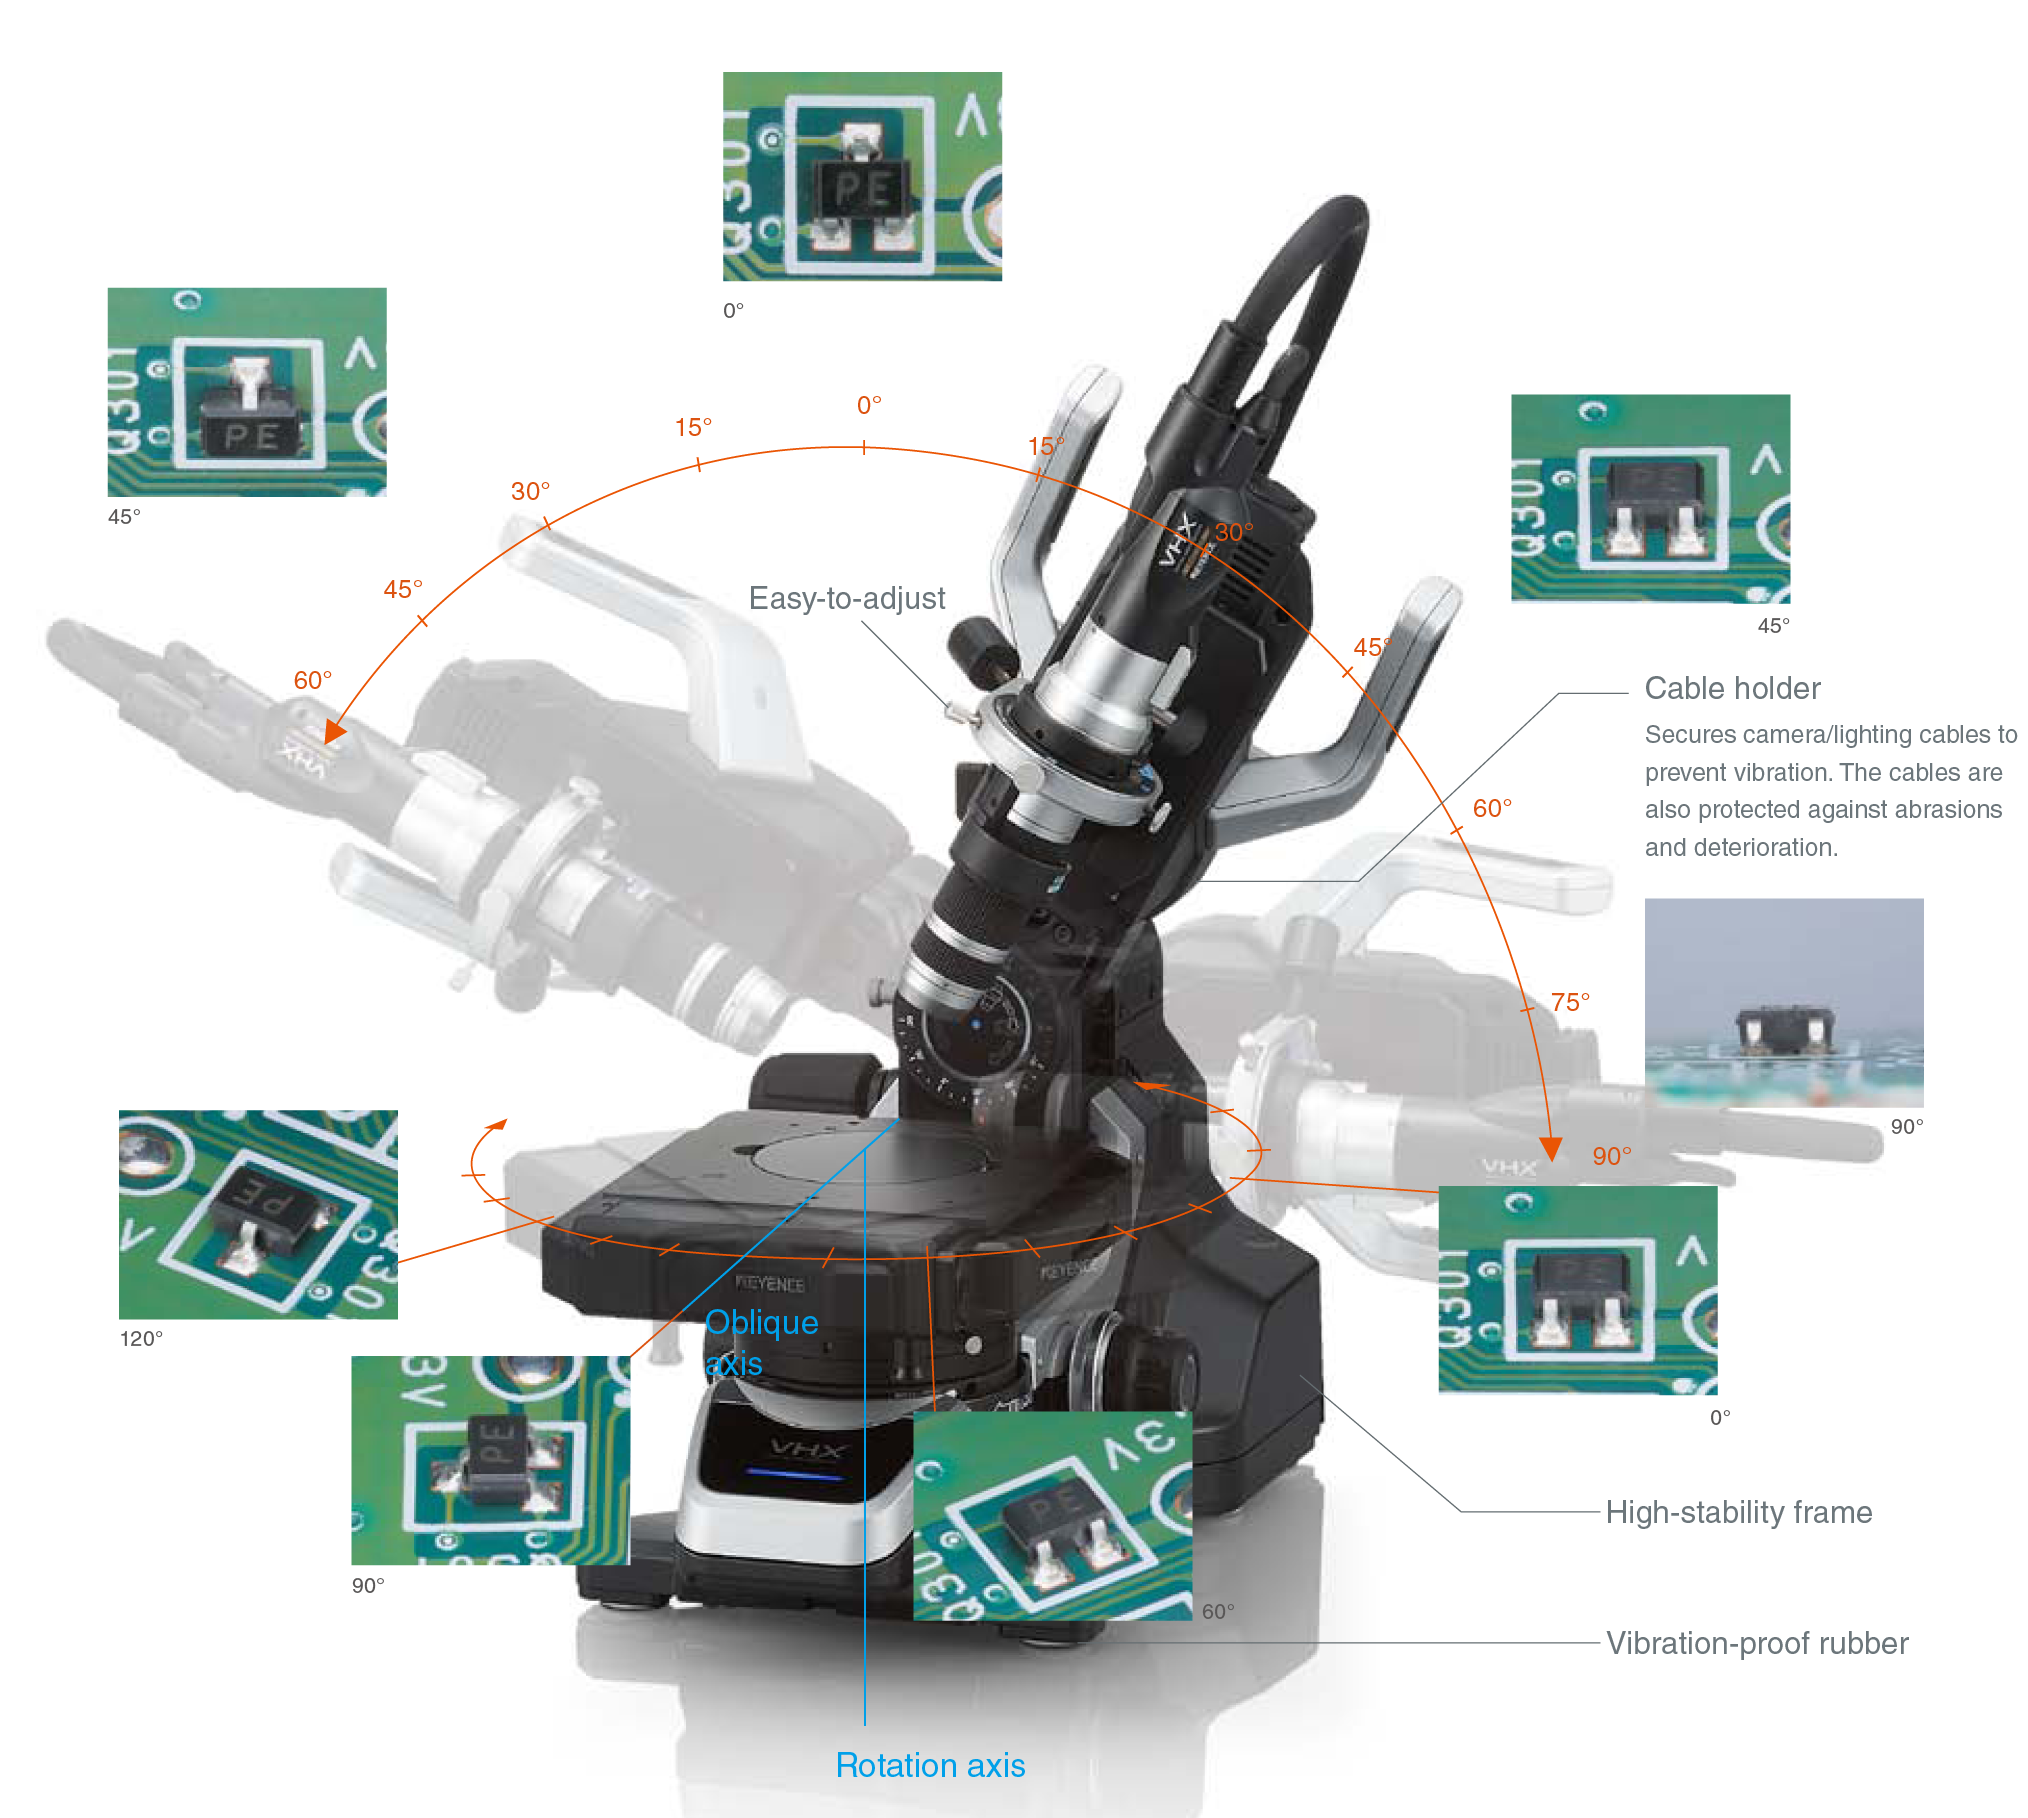 Keyence_digital_microscope_vhx_5000_features_Free_angle_observation_system